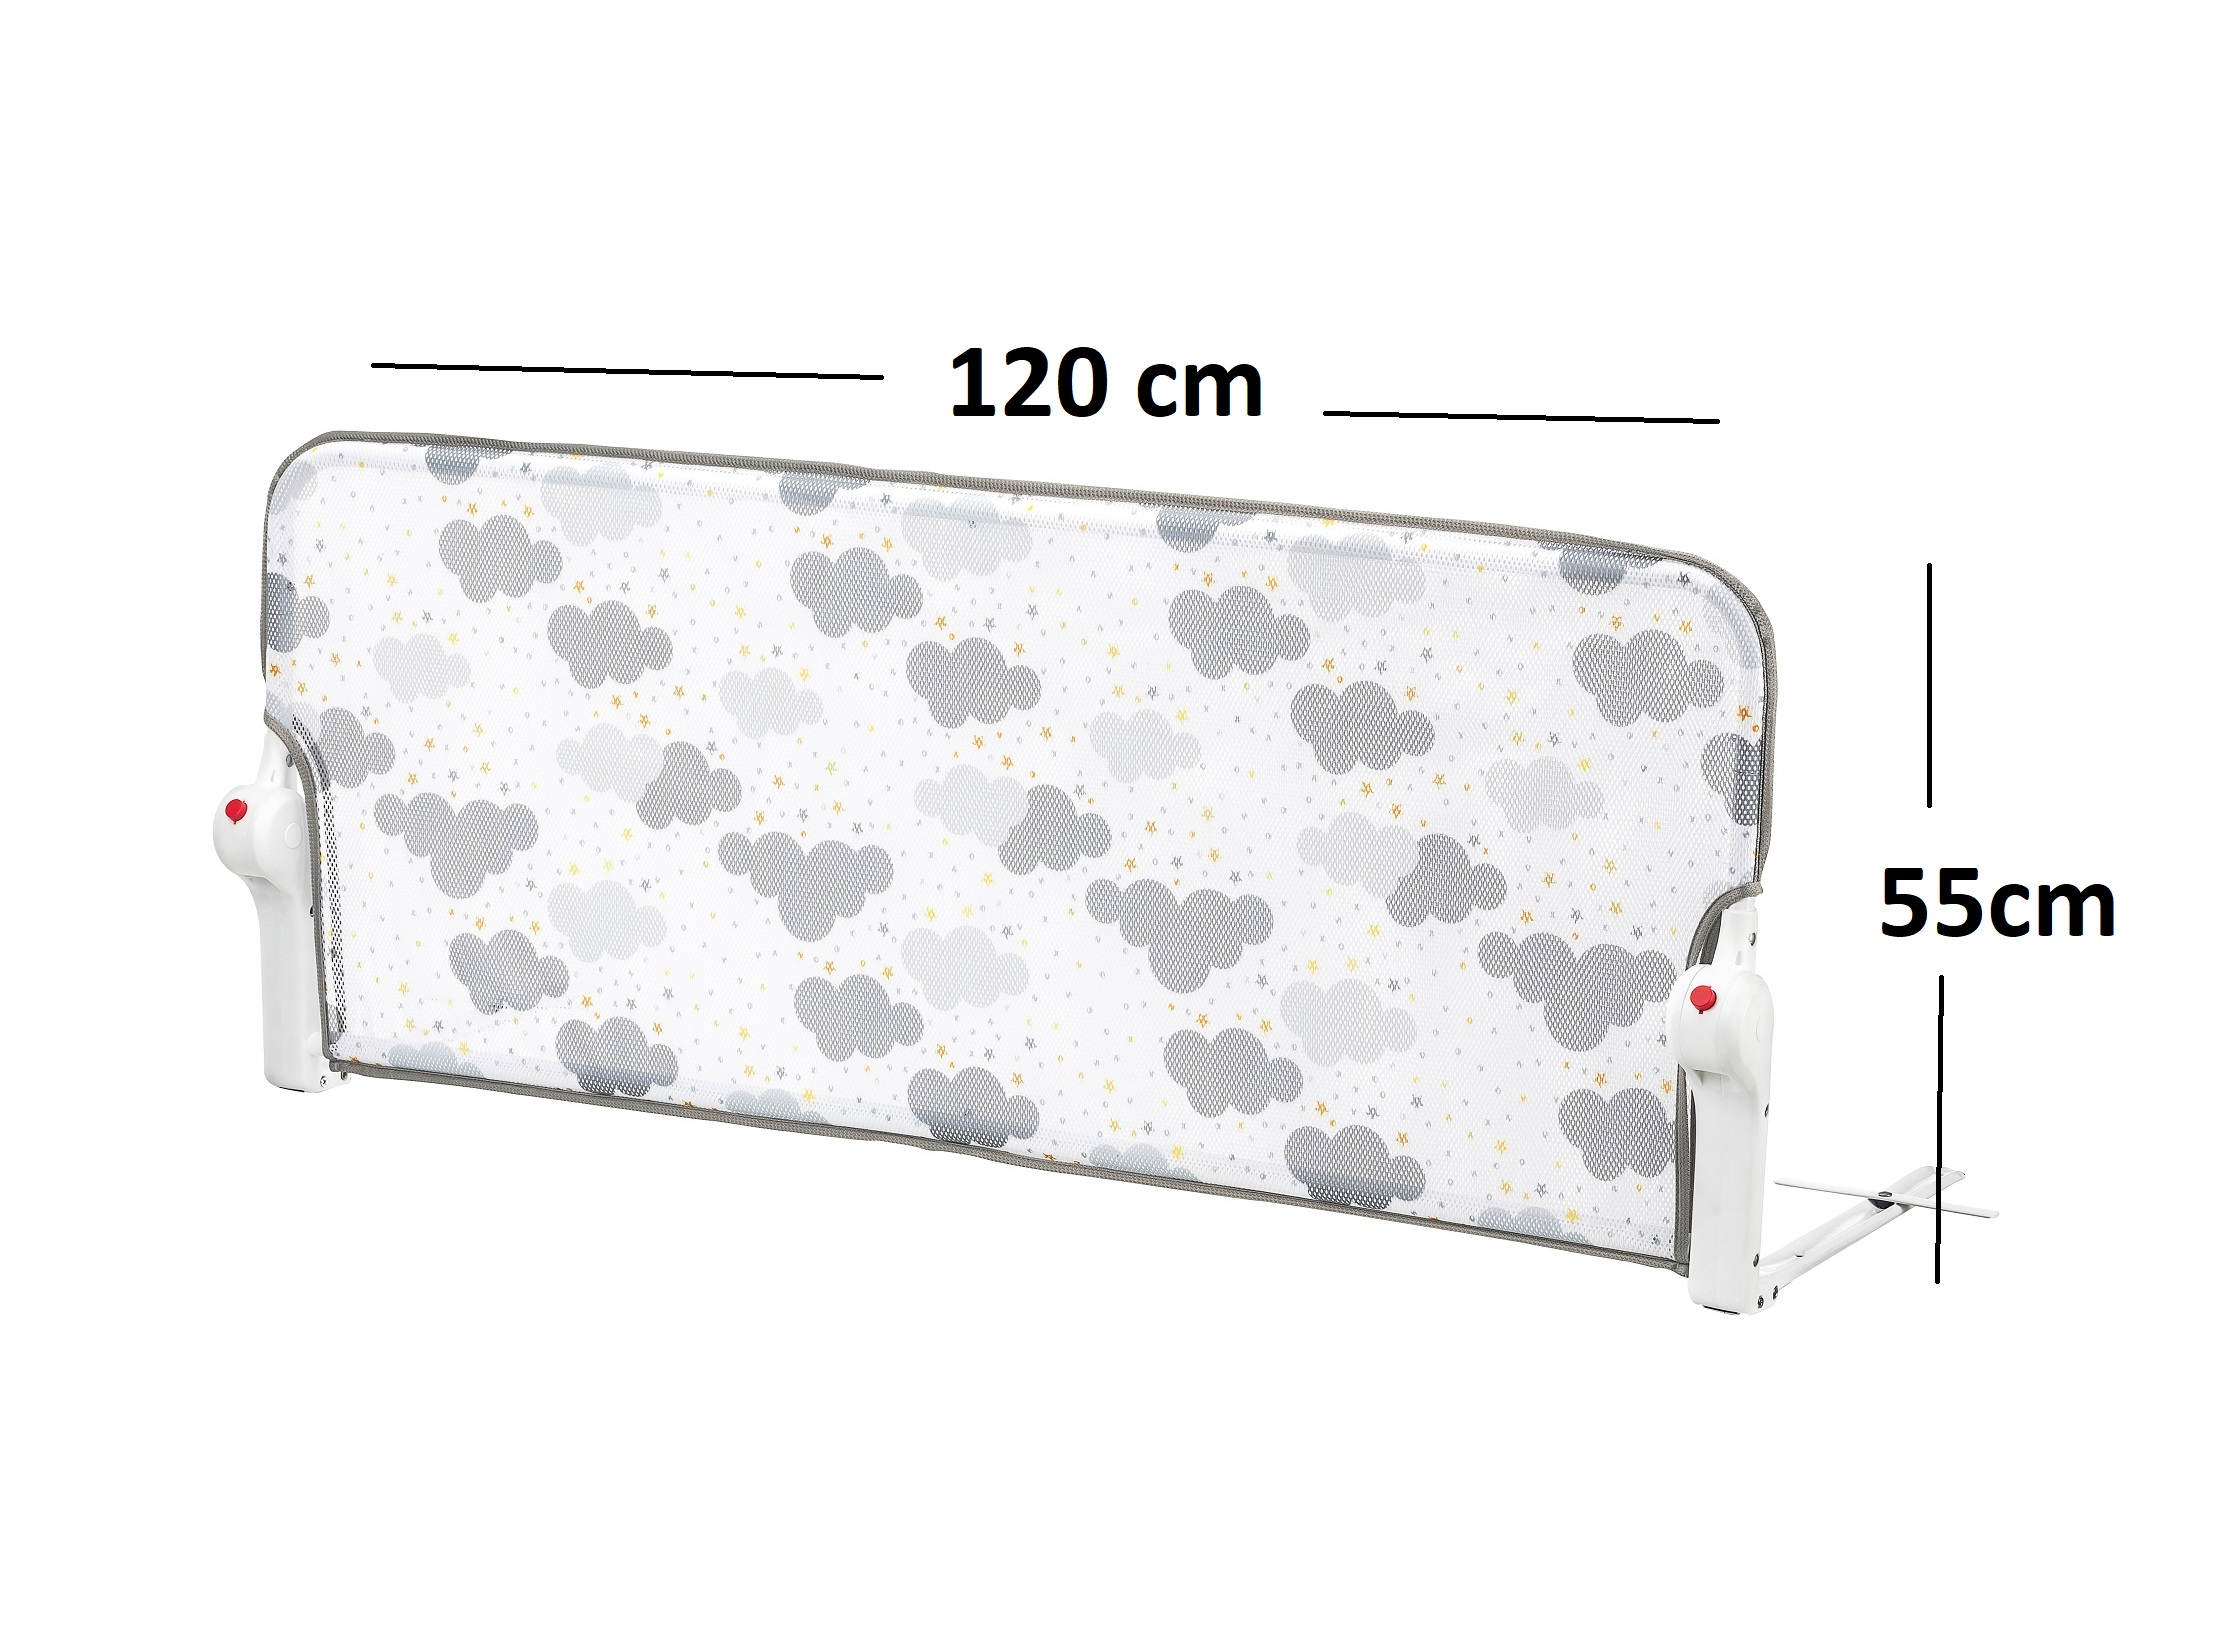 Tinycare Bed Rail For Baby, Portable Folding Bed Rail Single Bed Guard Safety Protection For Toddler Baby And Children 120x55cm